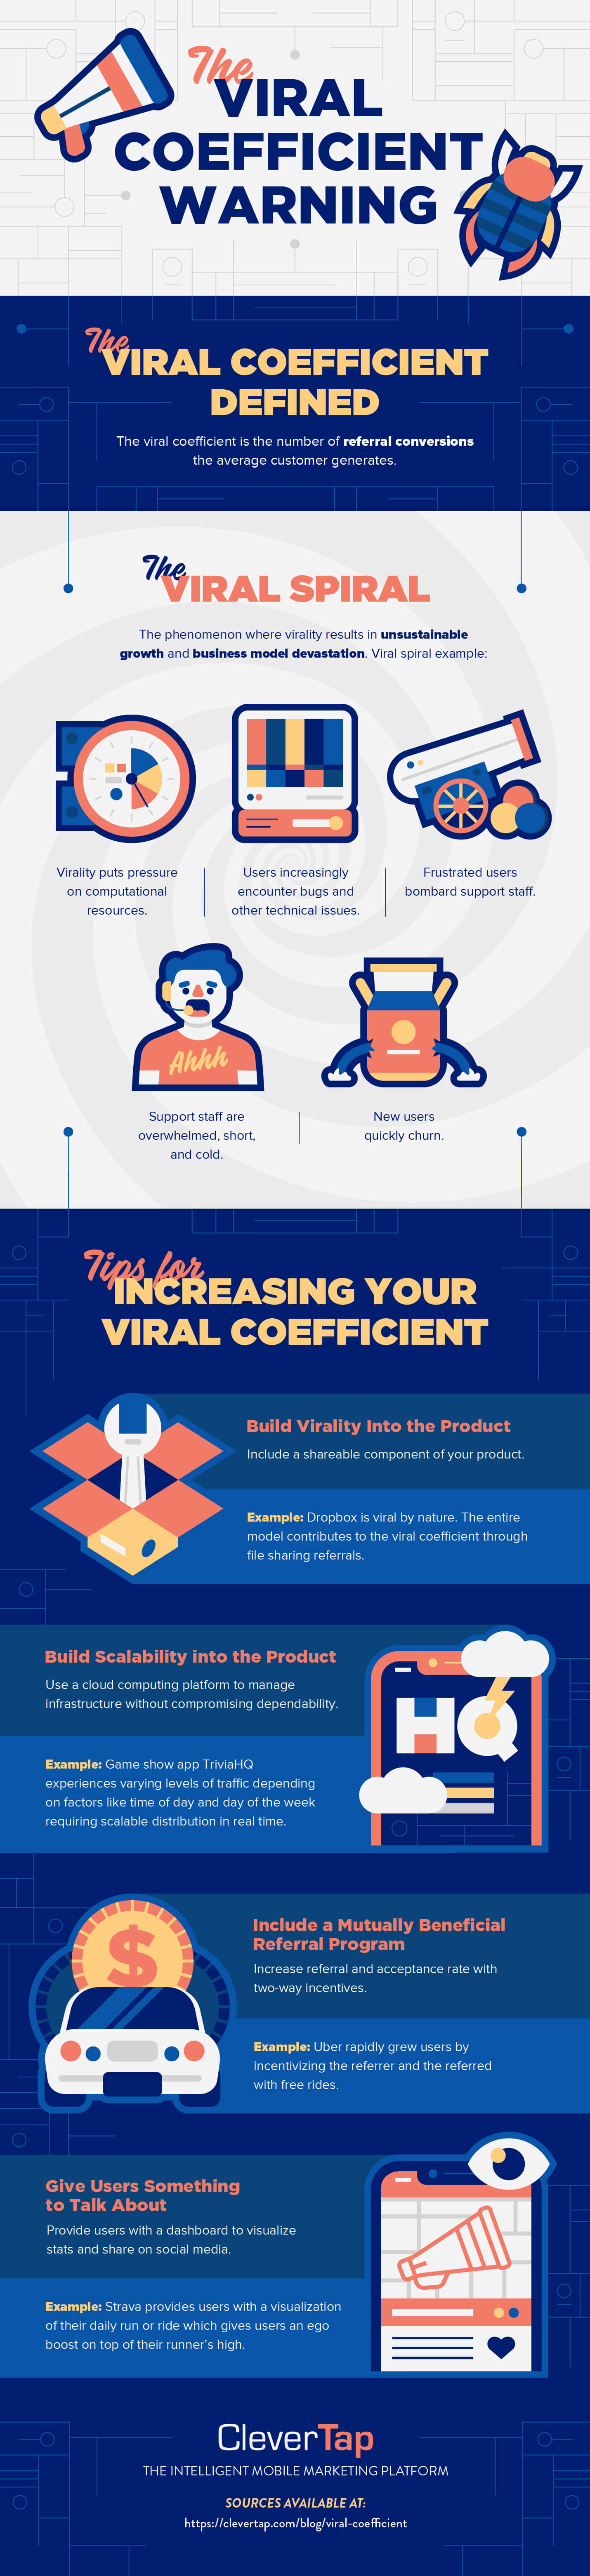 Viral coefficient tips infographic